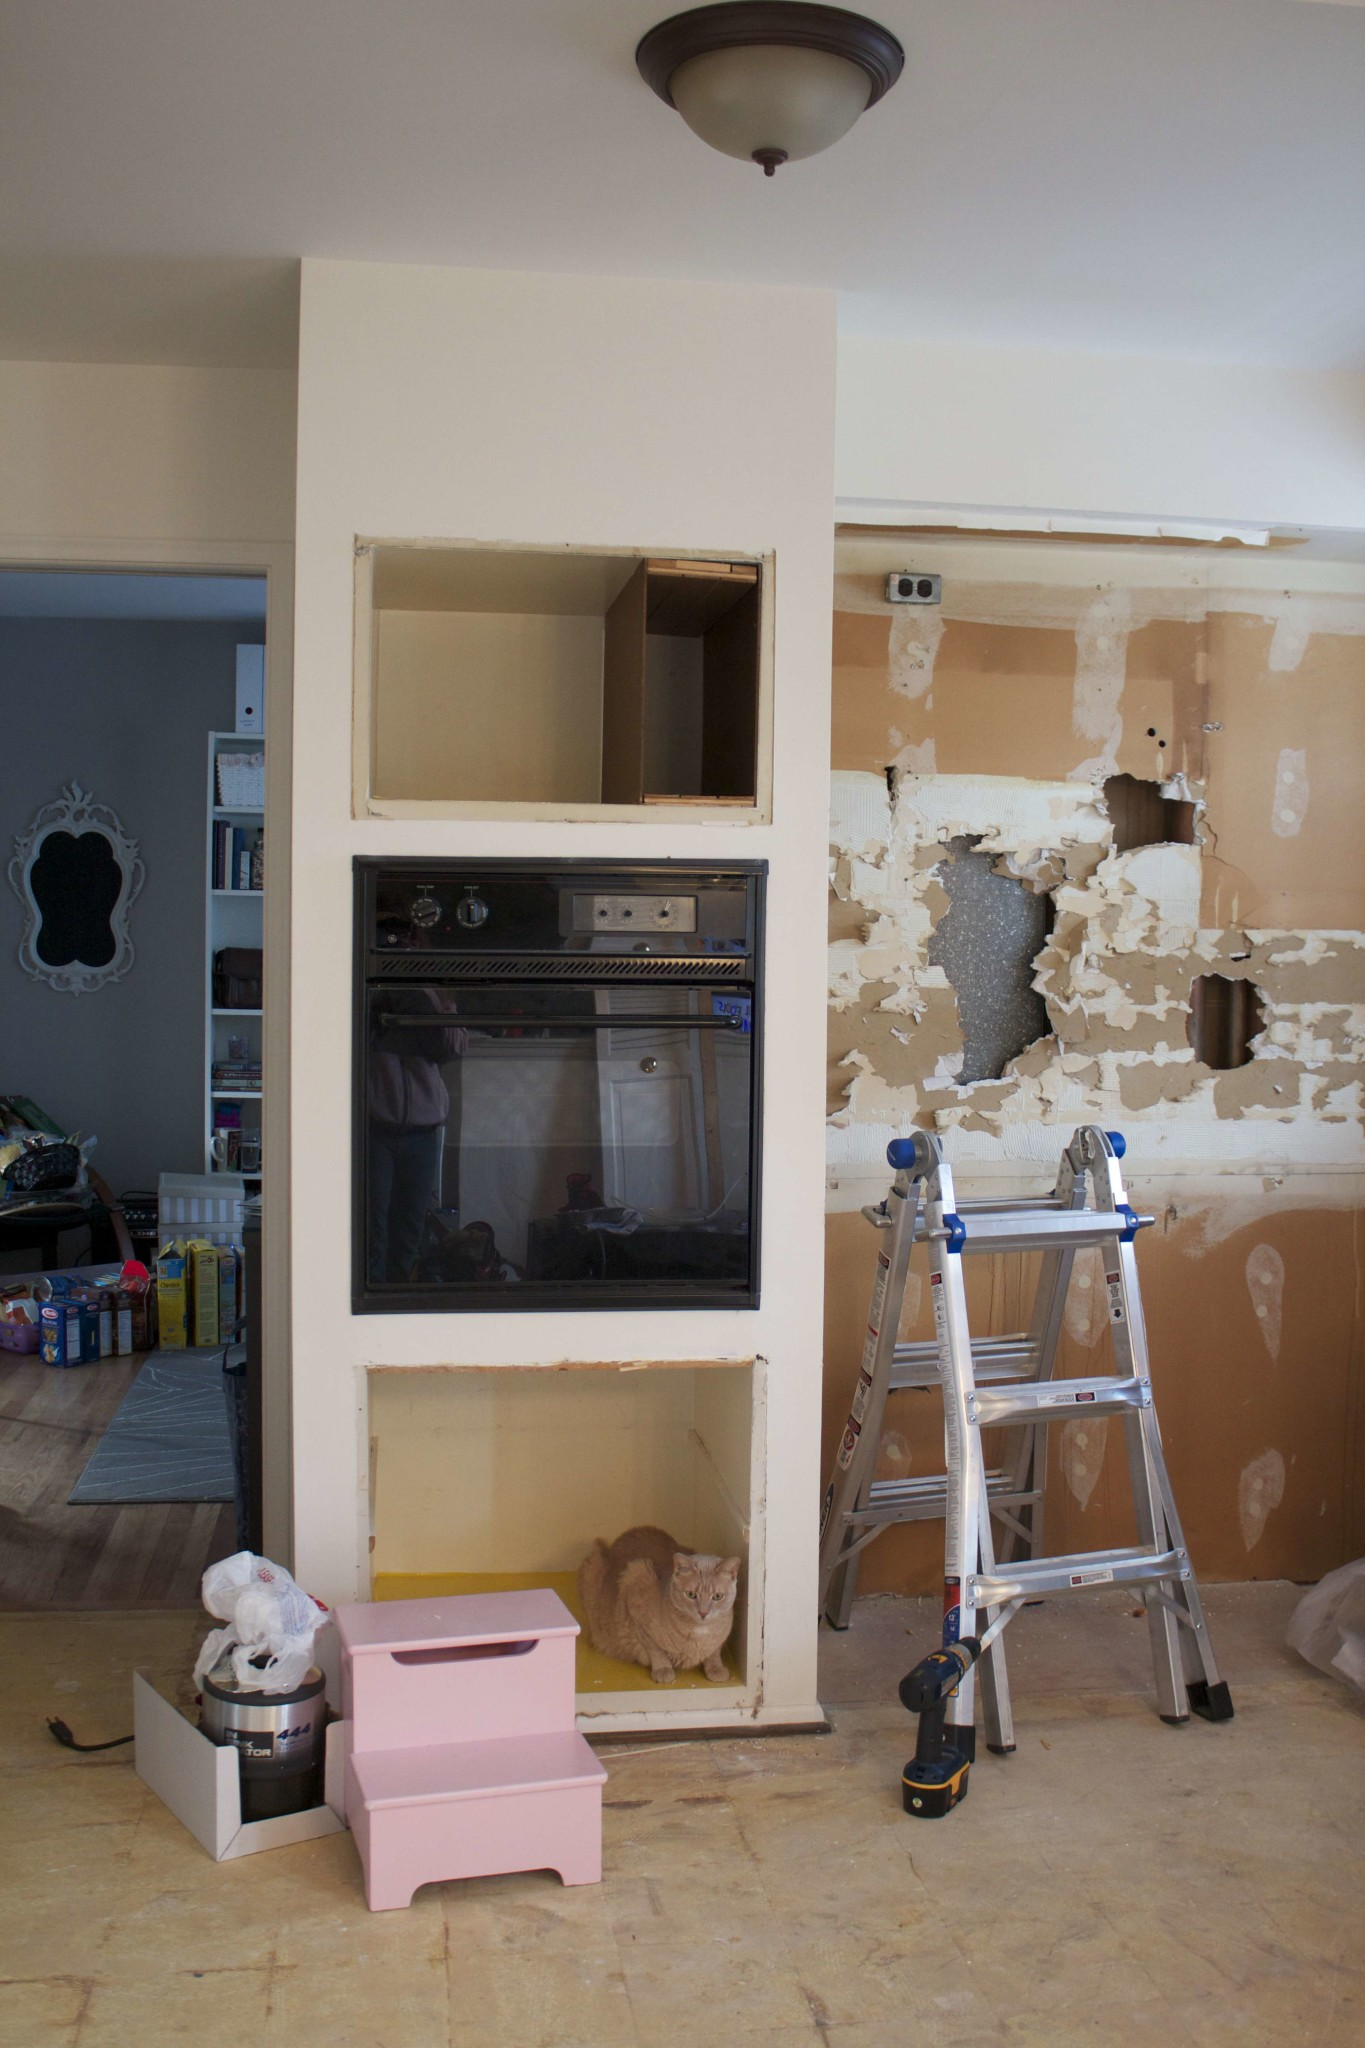 Built In Drywall Shelves Oven Oven On The Wall This Nest Is Blessed